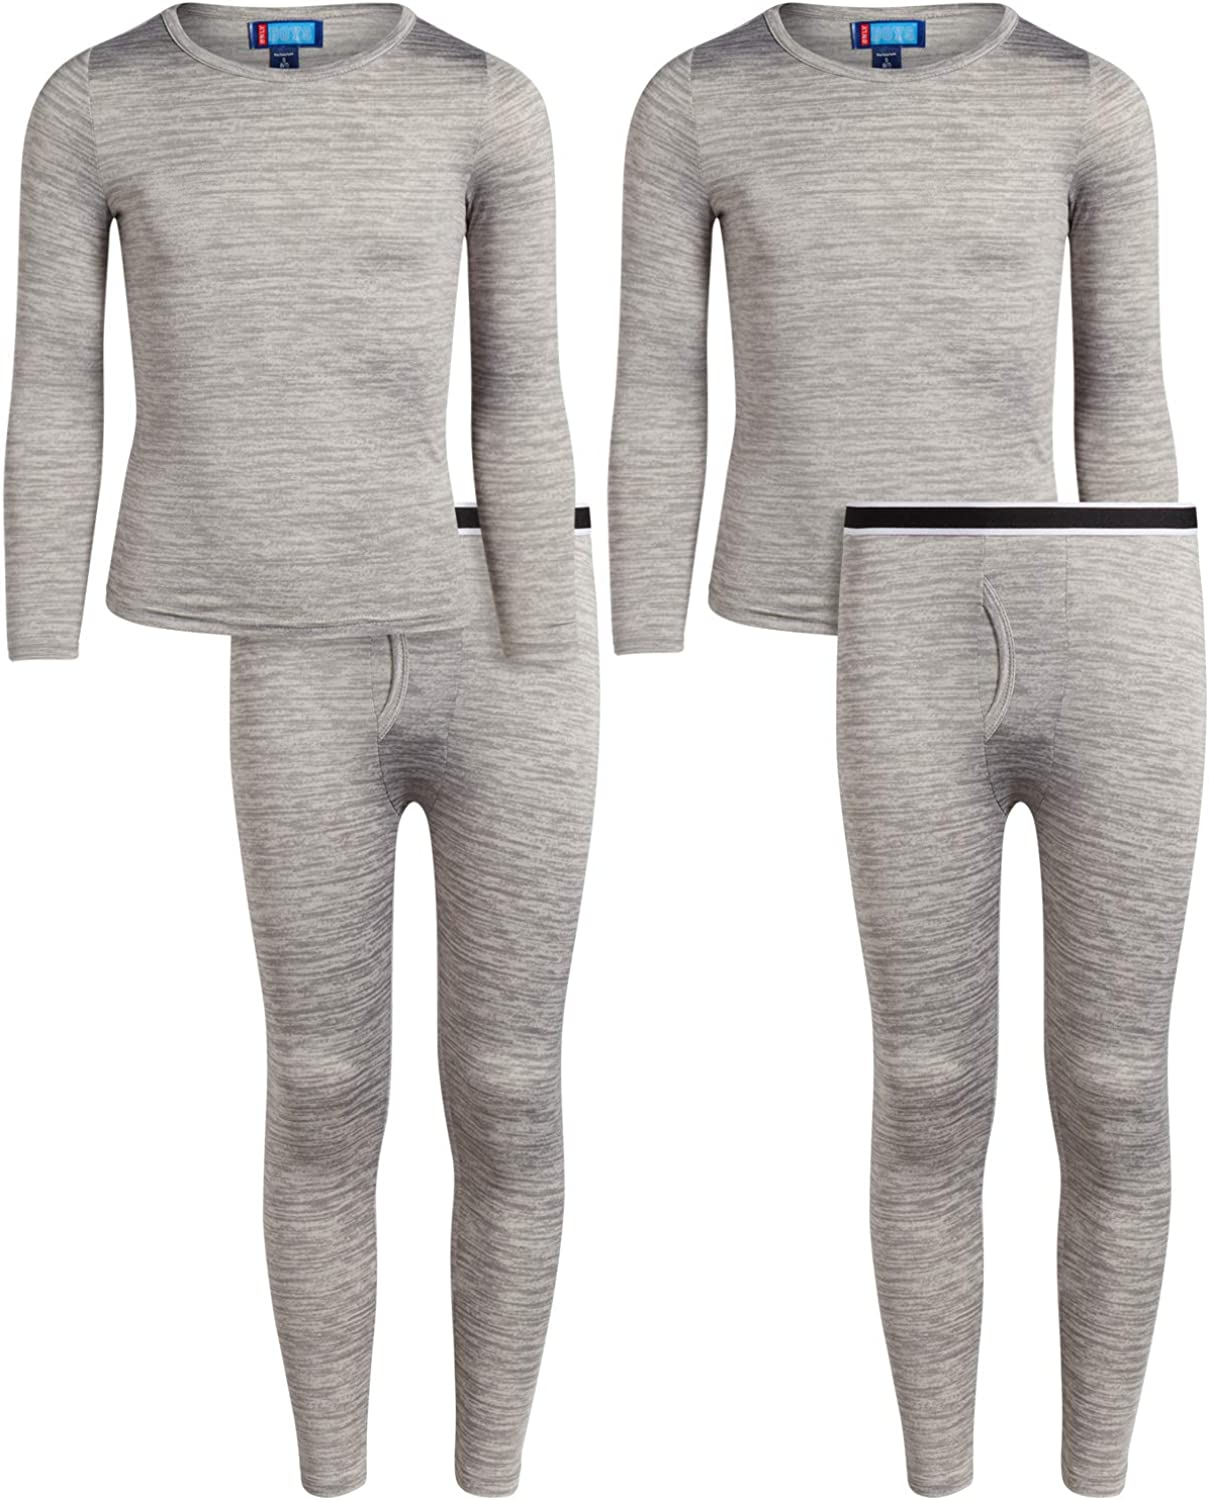 Only Boys Cozy Thermal Underwear Set –Lightweight Brushed Fleece Base Layer (2-Pack): Clothing